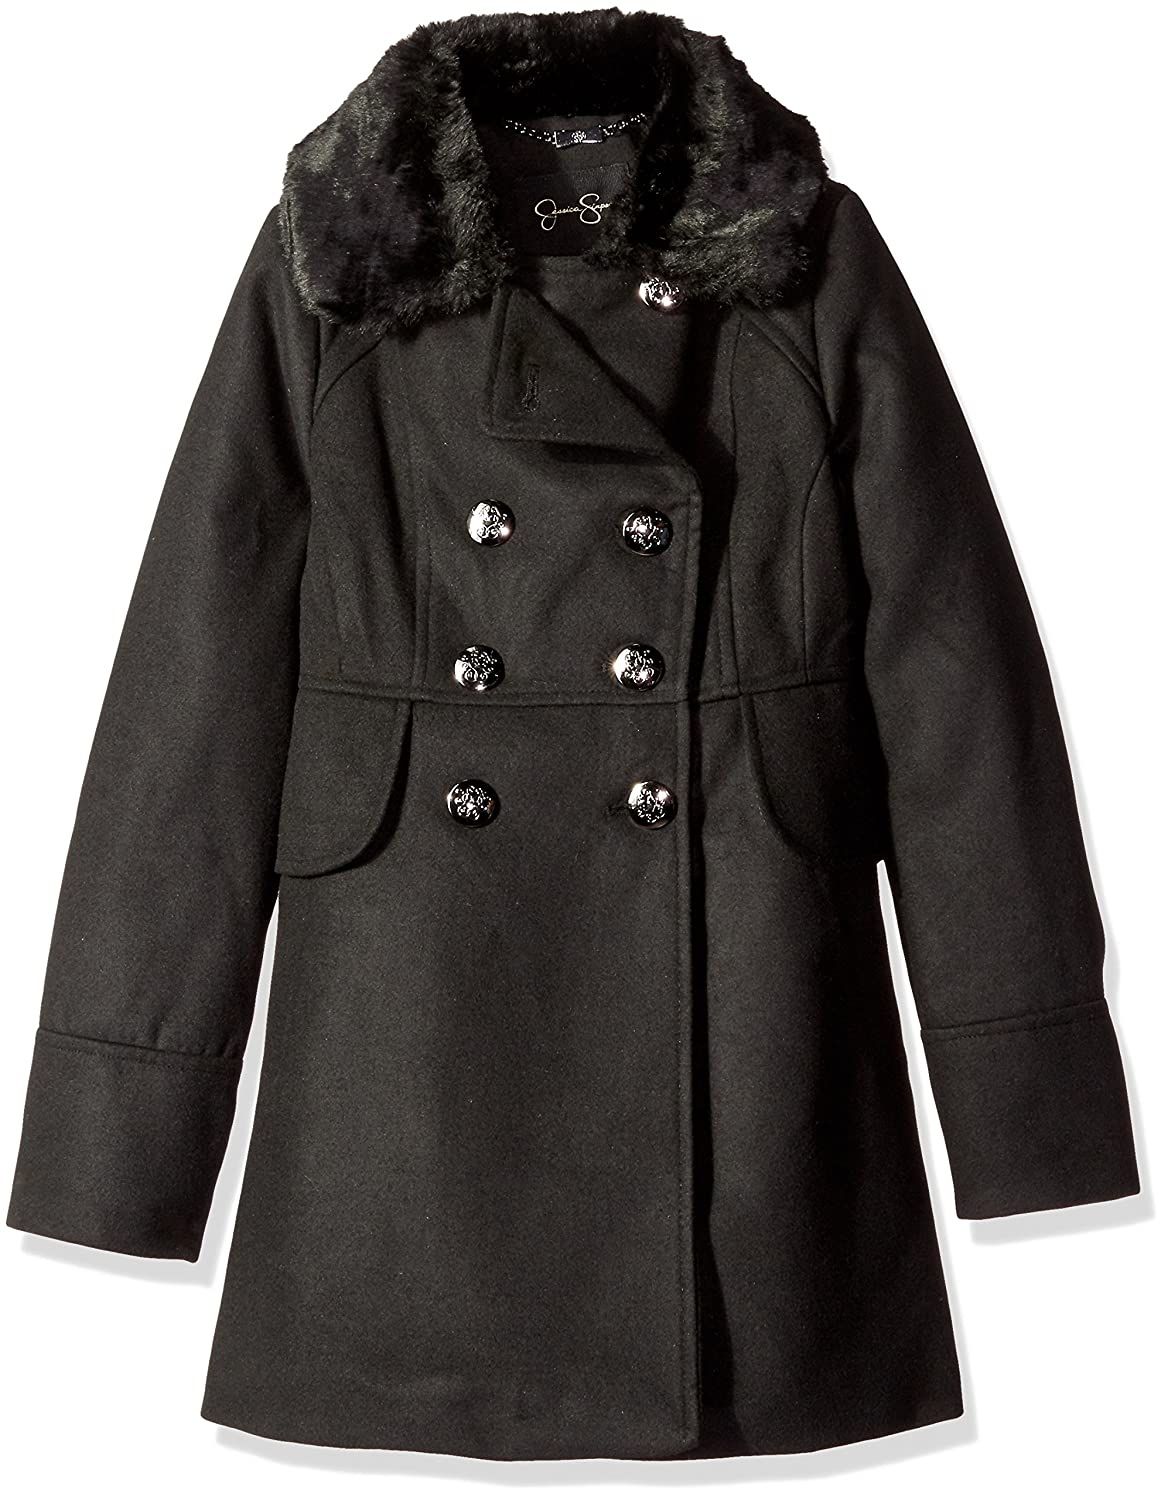 Jessica Simpson girls Big Girls Double Breasted Church Coat With Faux Fur Collar P216A20